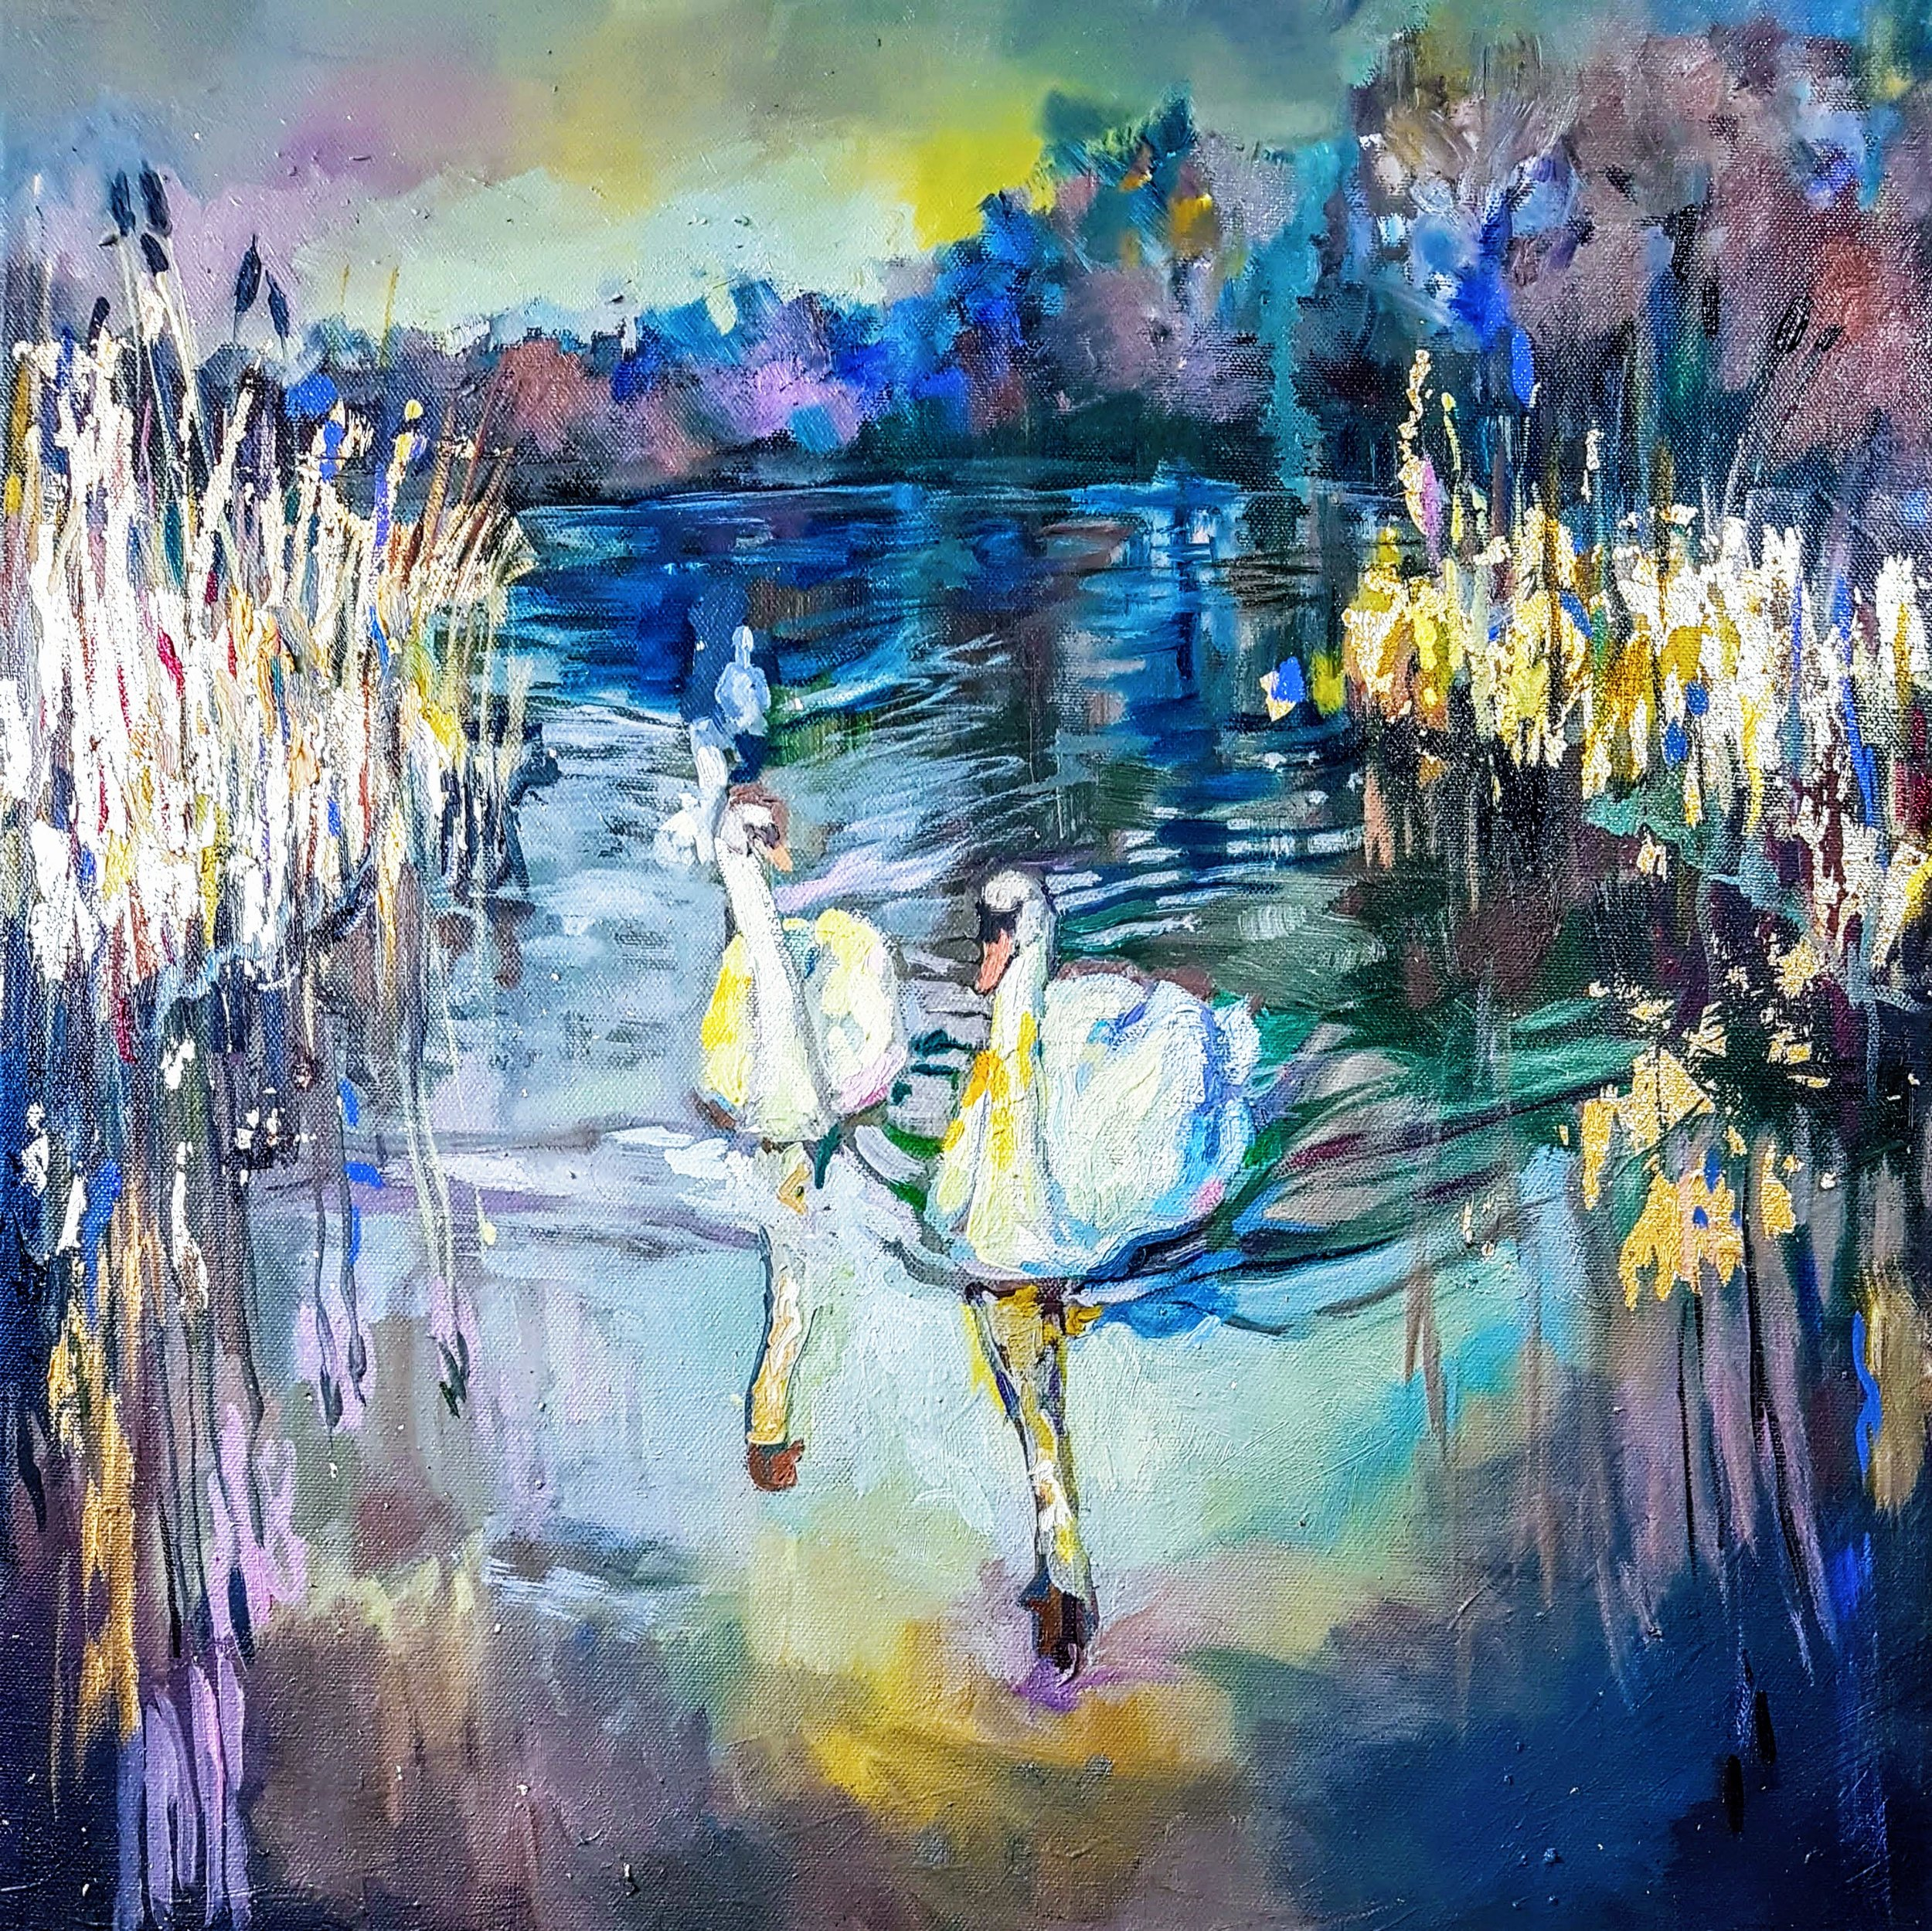 Swans Riverscape Work in Progress Aug 2018. Oils and gold leaf on a stretched canvas 50 x 50 xm